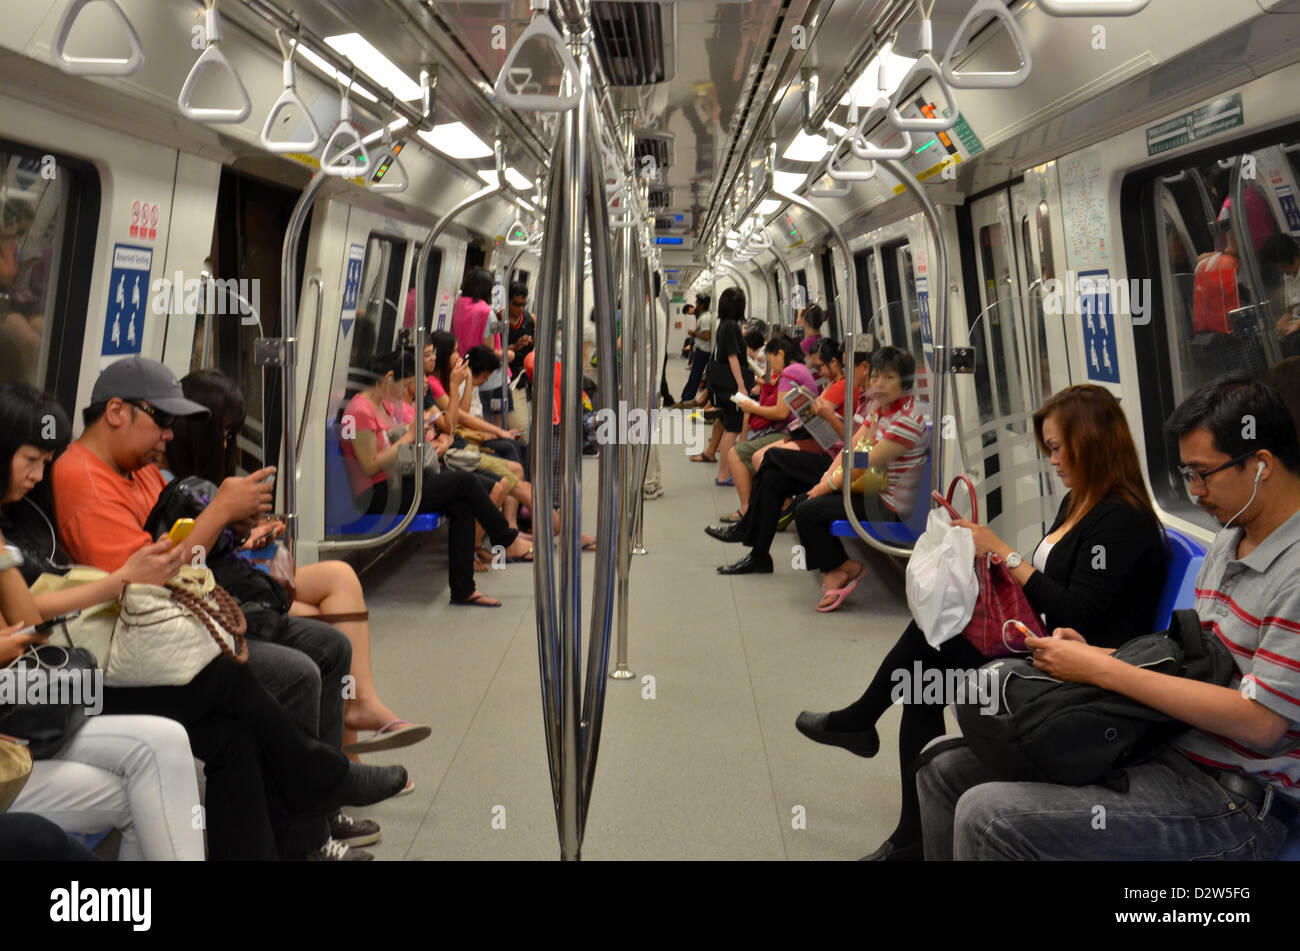 Travelers sitting inside a Singapore MRT subway train ...